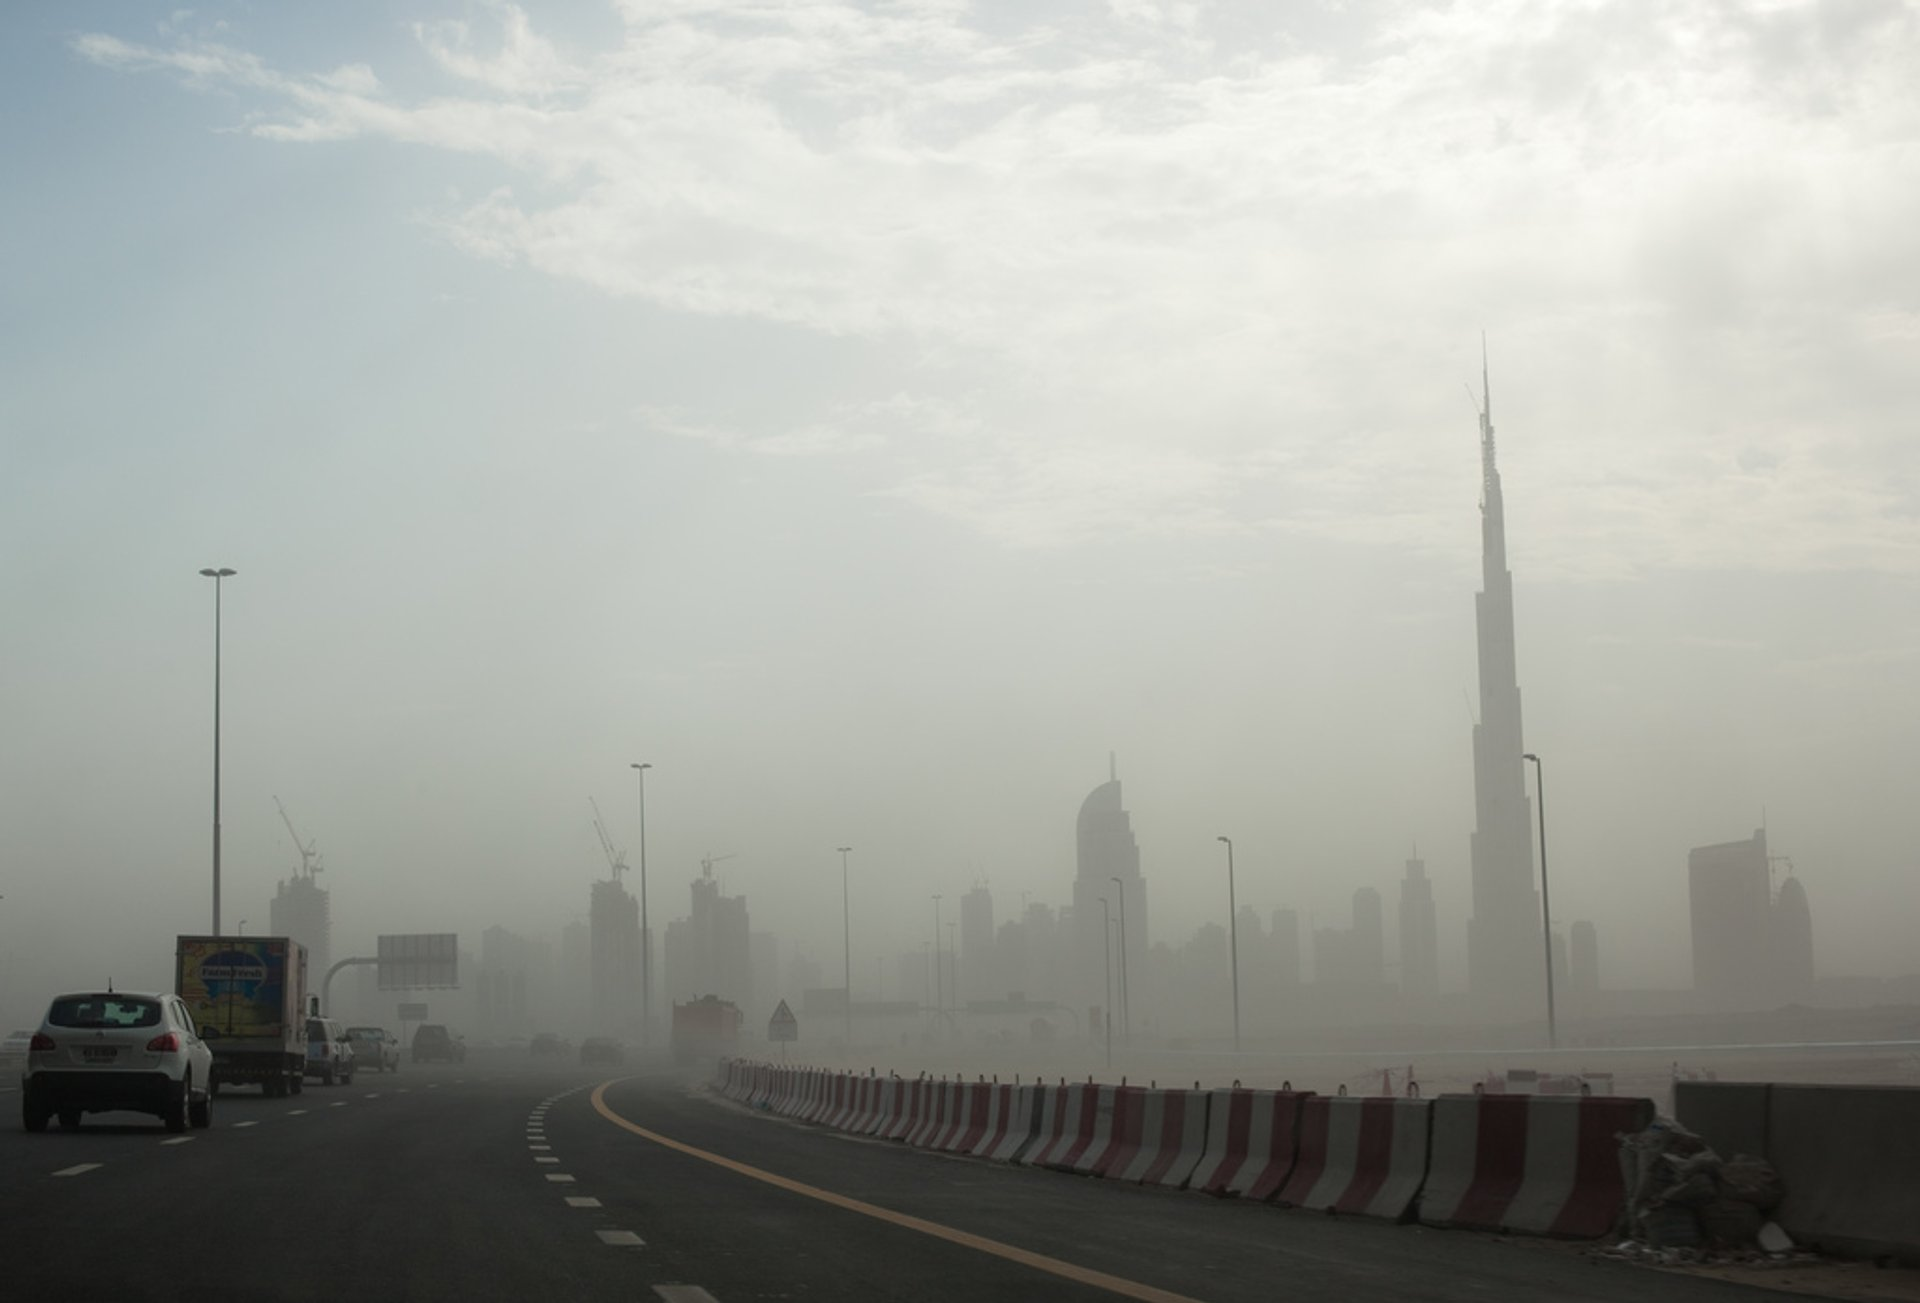 Sandstorms in Dubai 2020 - Best Time